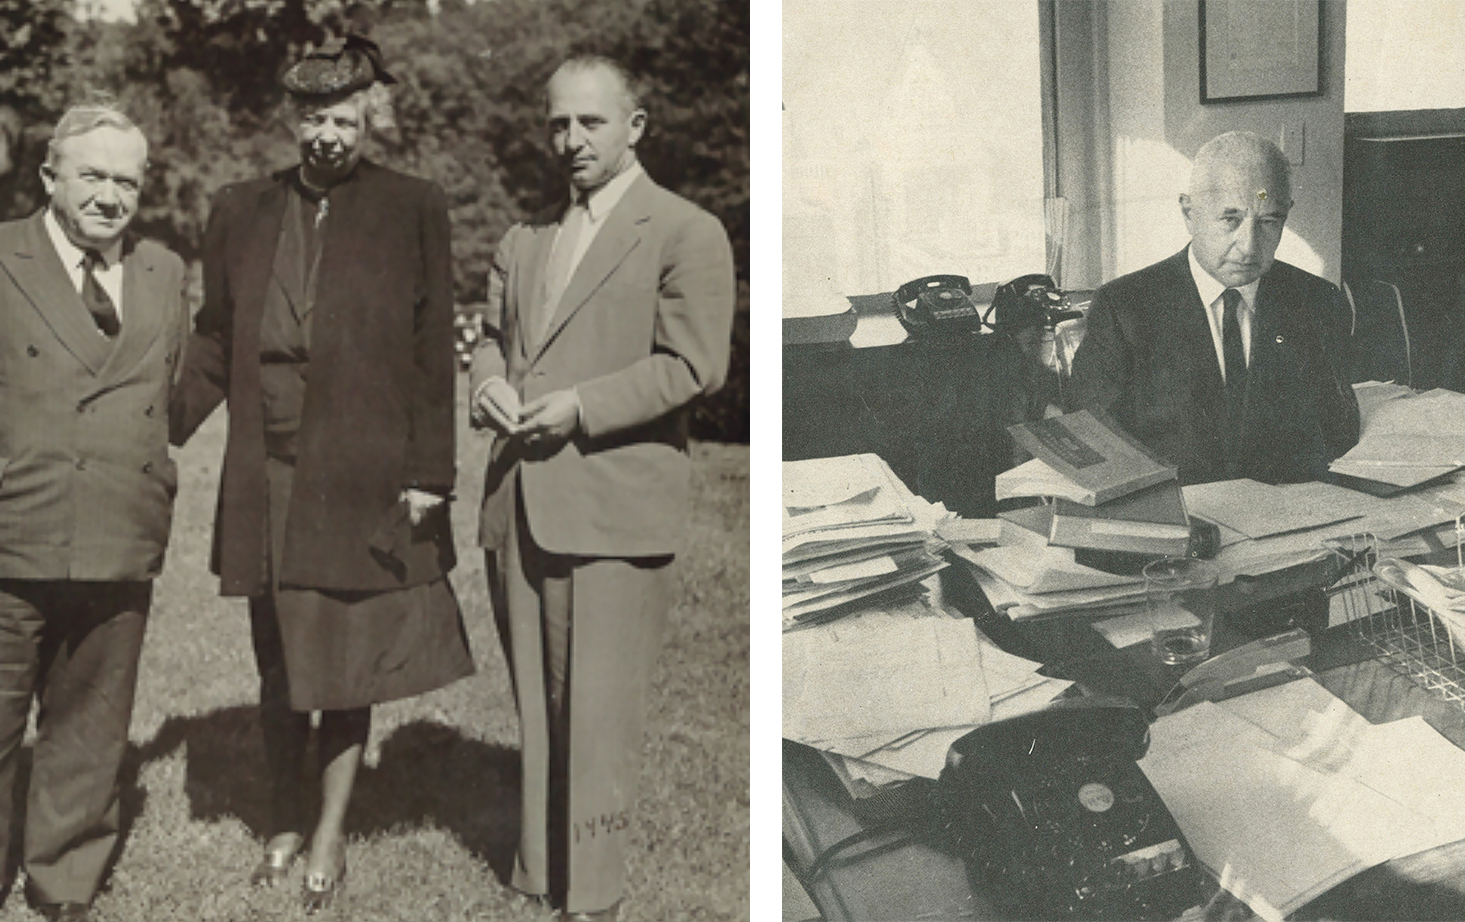 Above: Abe in 1945 with Eleanor Roosevelt and Thomas F.J. Connolly.  At Right:  Photo of Abe by Duane Michaels for Fortune Magazine, February 1968 article.